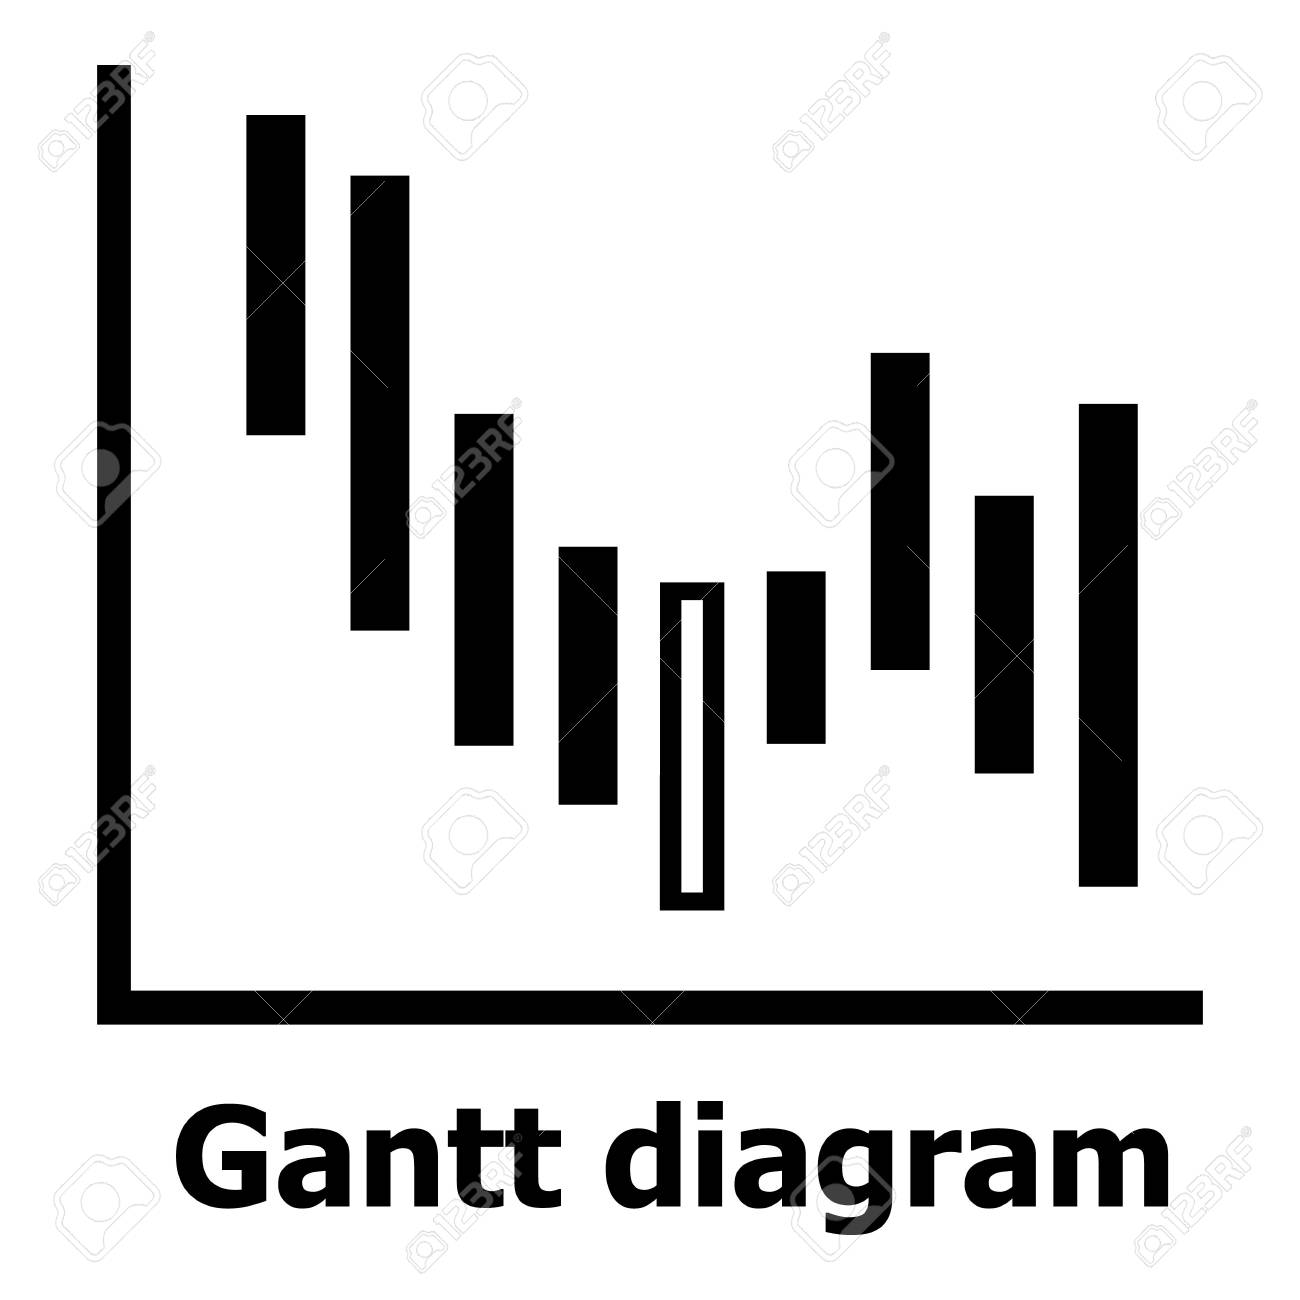 Gantt diagram icon simple style royalty free cliparts vectors gantt diagram icon simple style stock vector 93060466 ccuart Choice Image